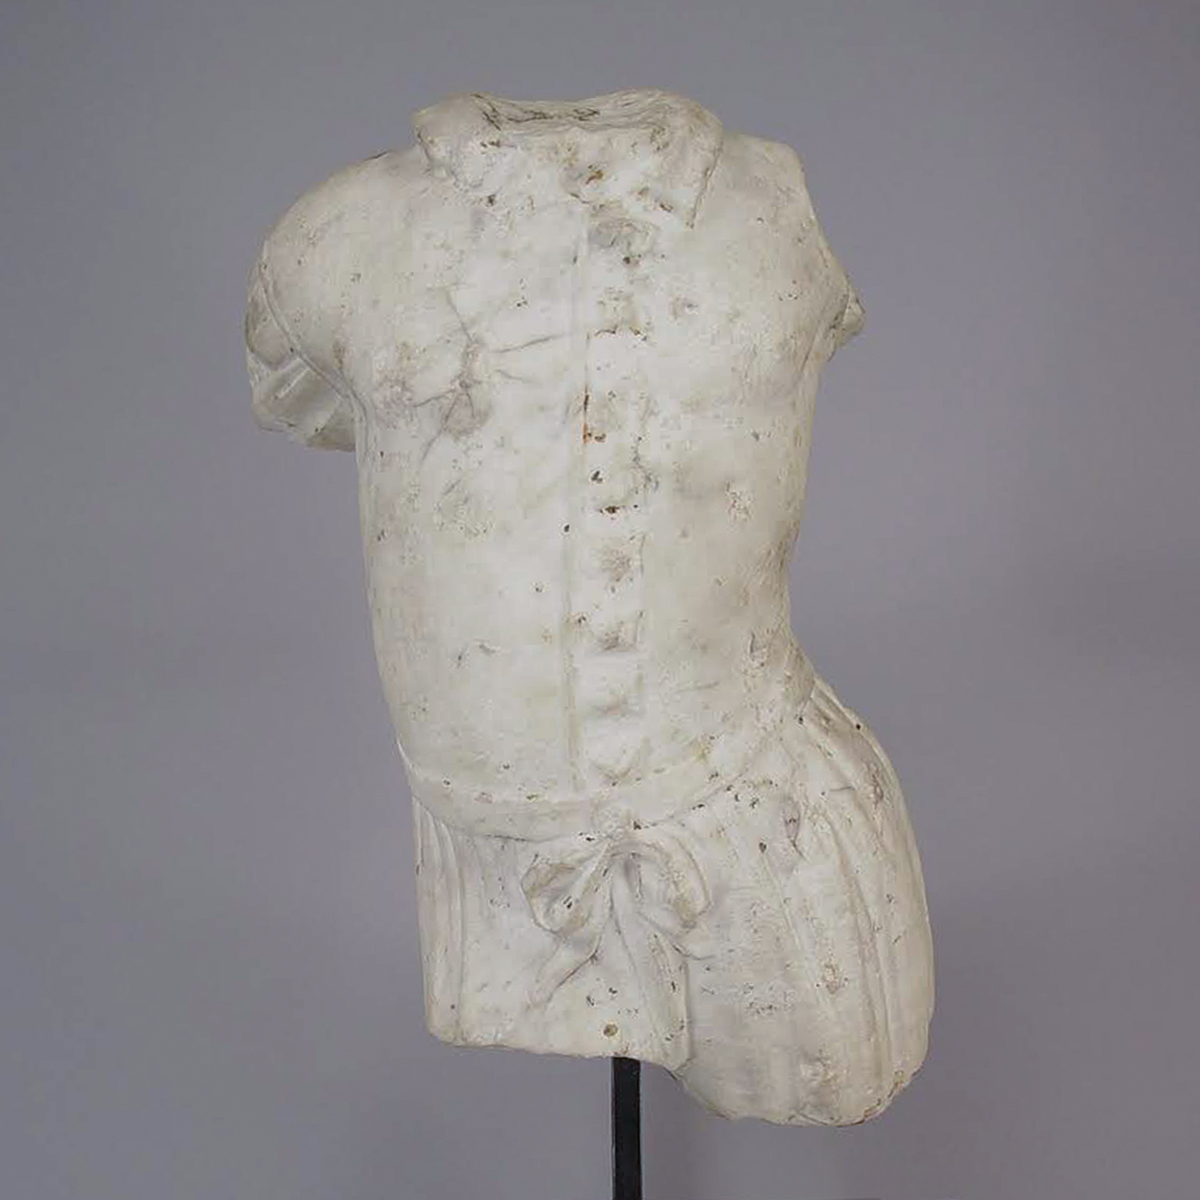 16th/17th-century marble sculpture